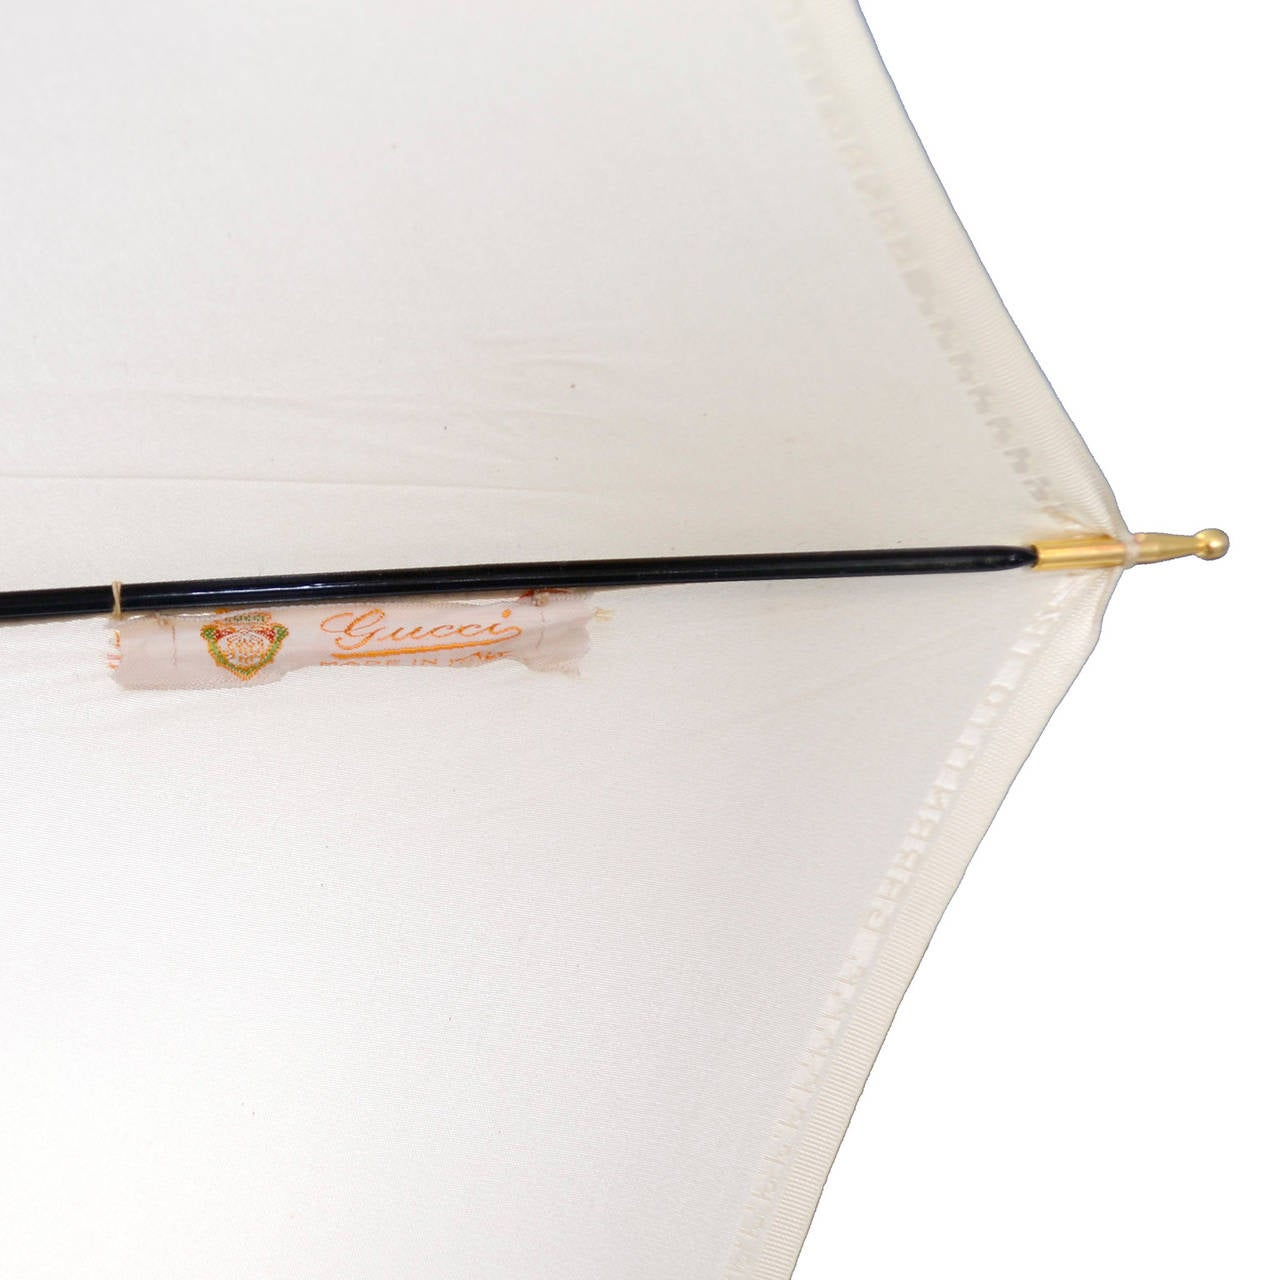 Gucci 1970s Vintage Umbrella Ivory Original Sleeve Italy 5